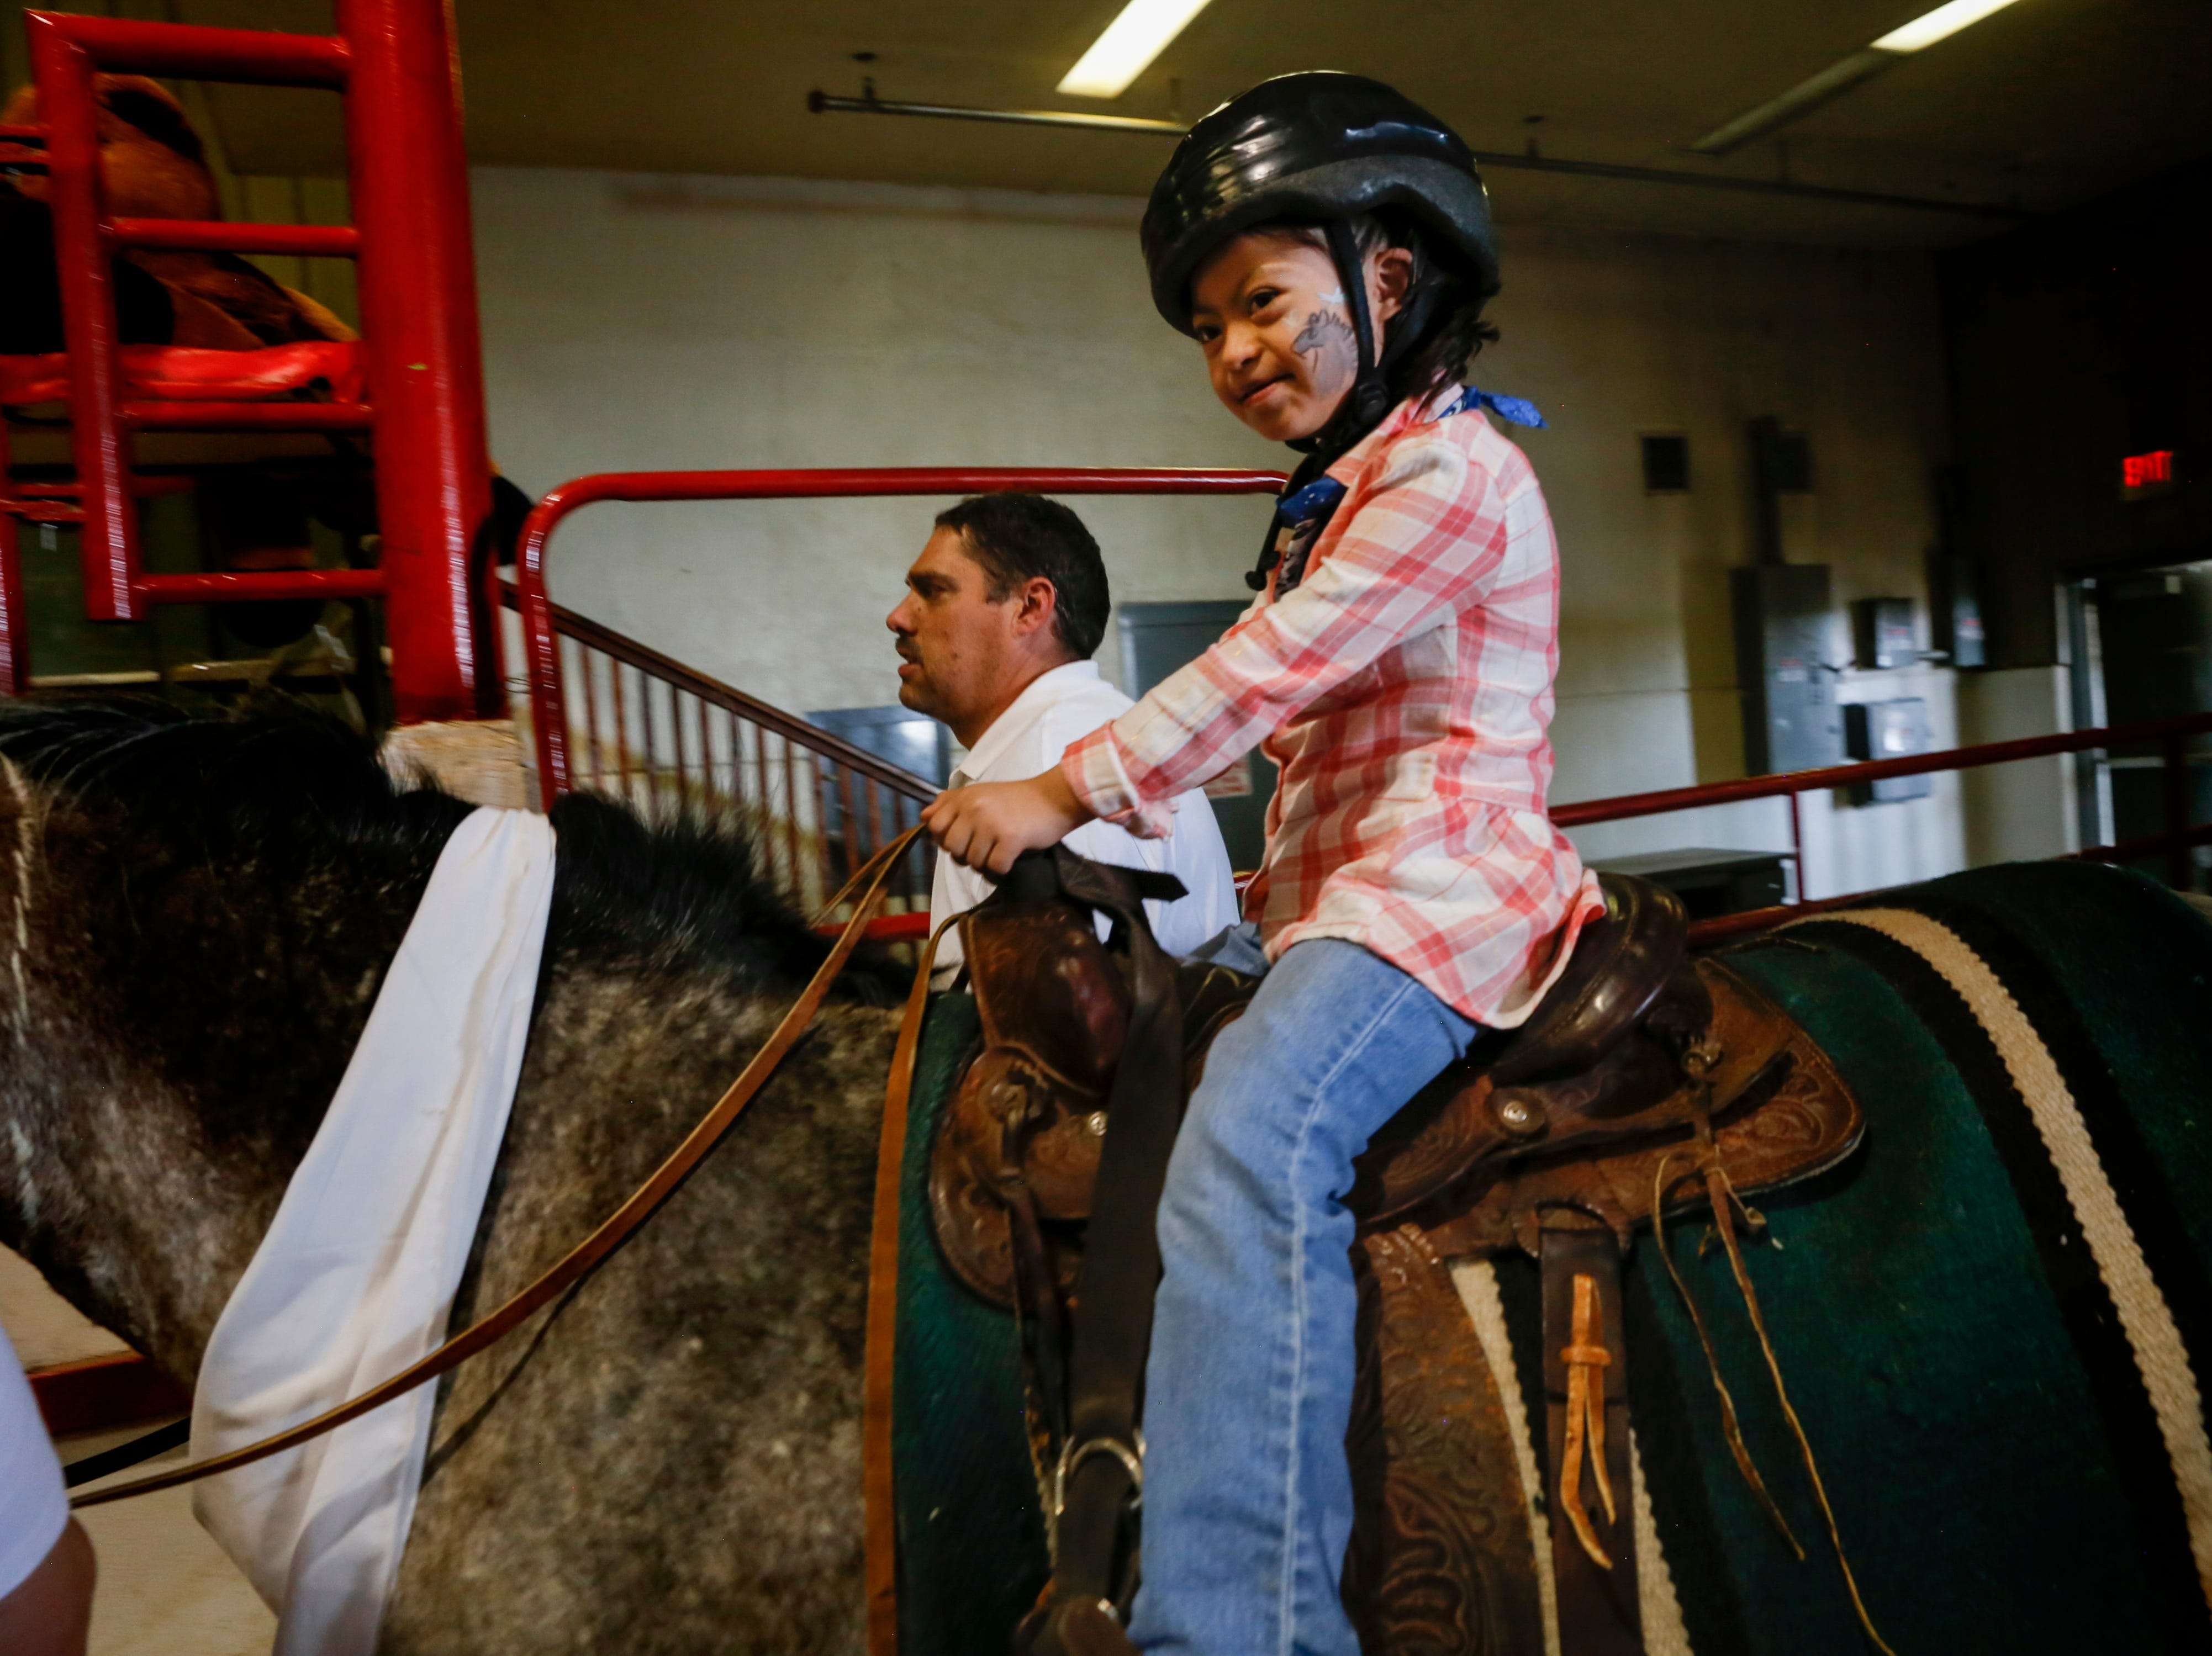 Dyanna Perez is led out of the arena on top of Chiple, Wednesday, Aug. 15. 2018 for an equestrian show for people with disabilities at the San Juan County Fair in Memorial Coliseum at McGee Park in Farmington